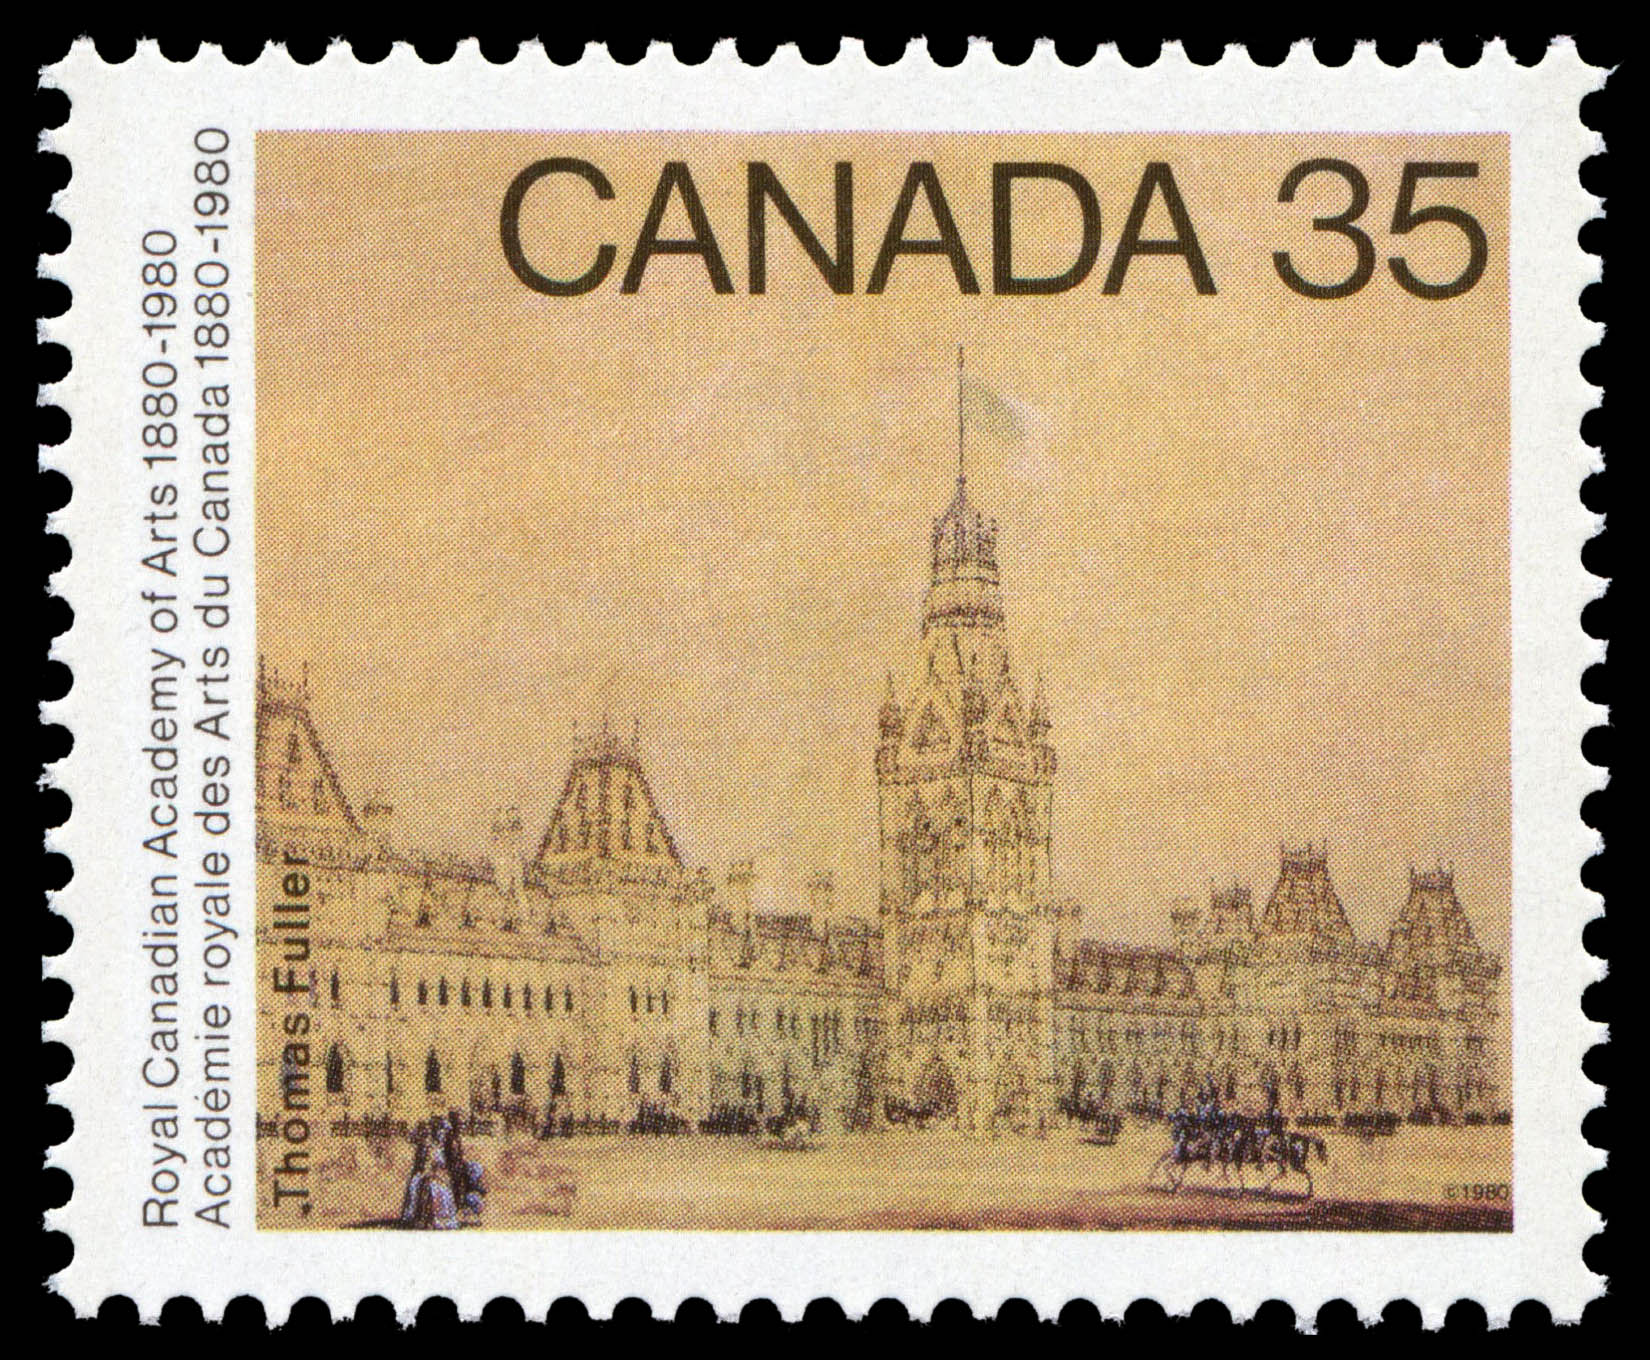 Thomas Fuller, Parliament Buildings Canada Postage Stamp